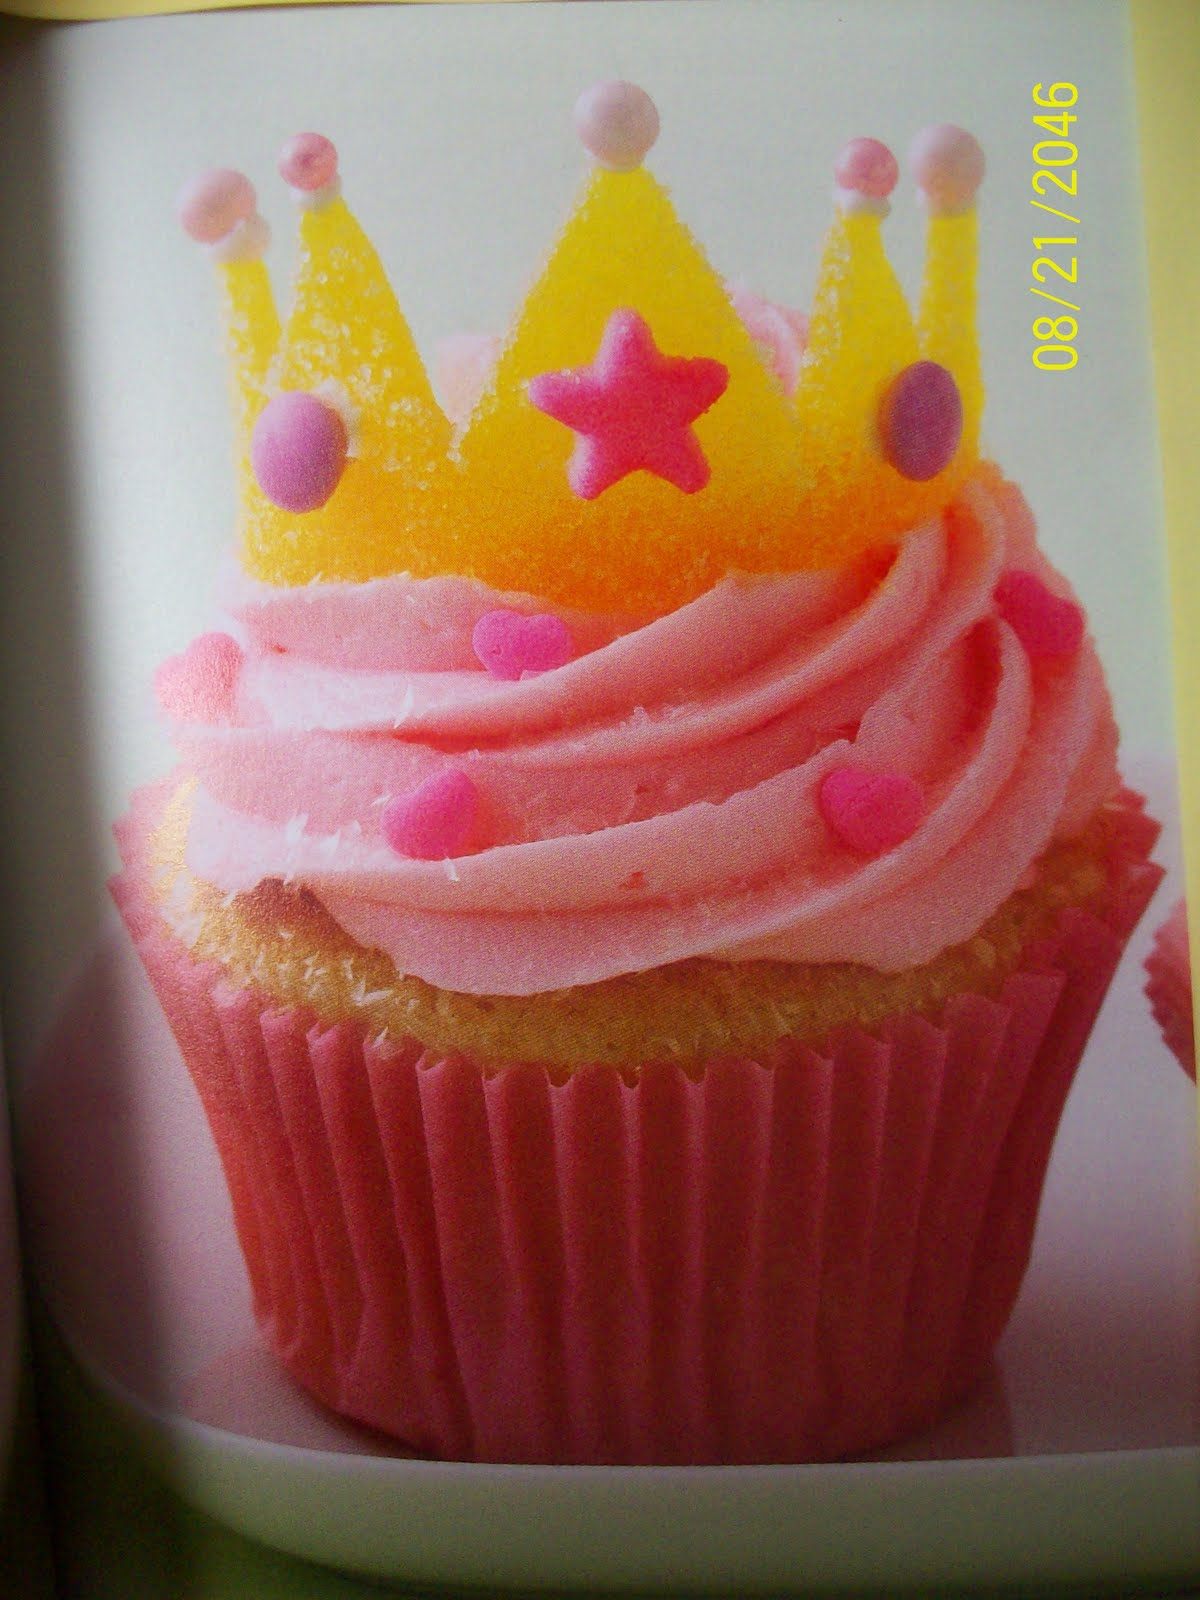 Princess Cupcake Images : Cute as a Cupcake: Princess Cupcakes